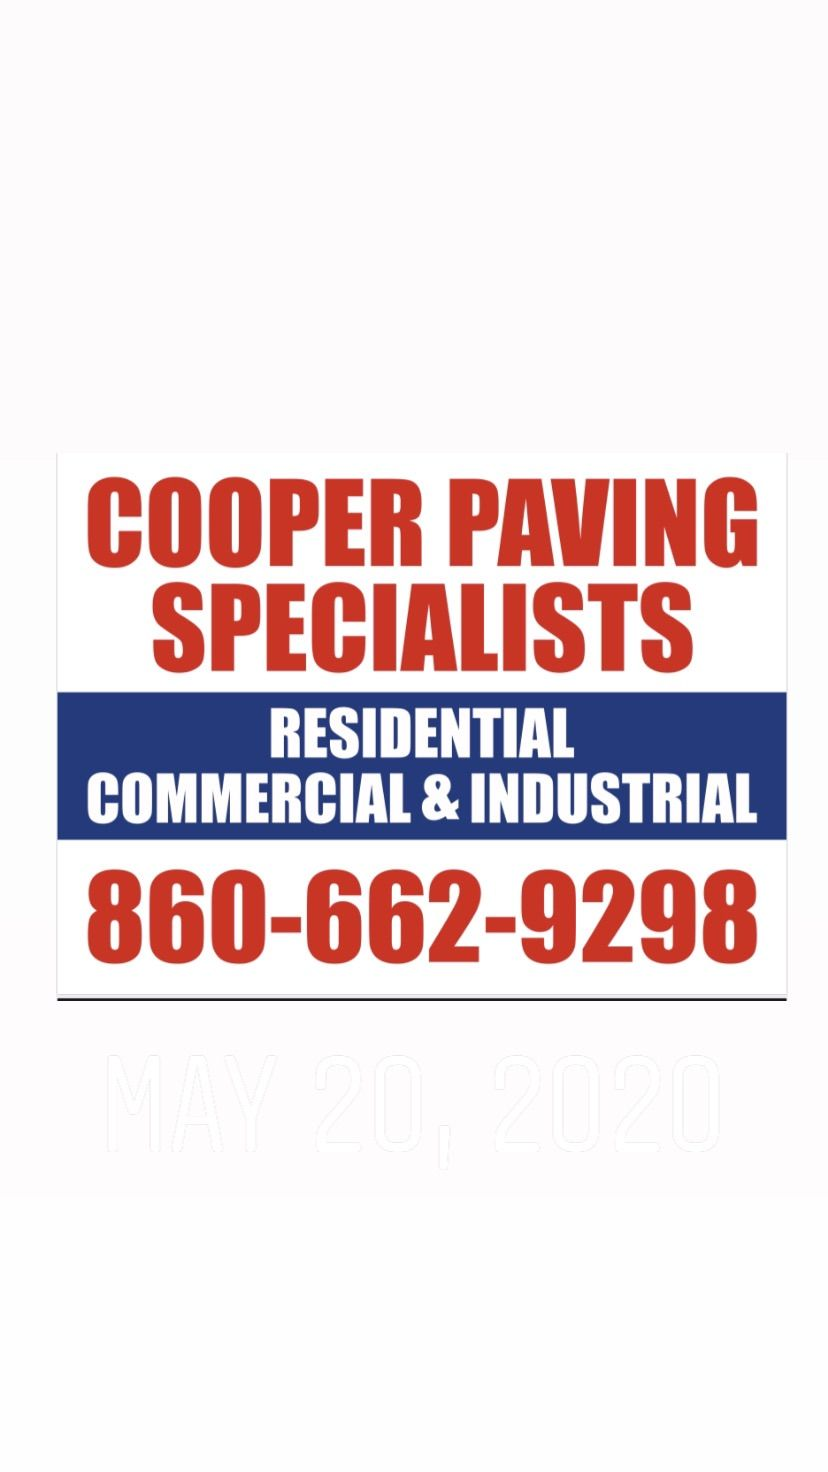 Cooper Paving Specialists